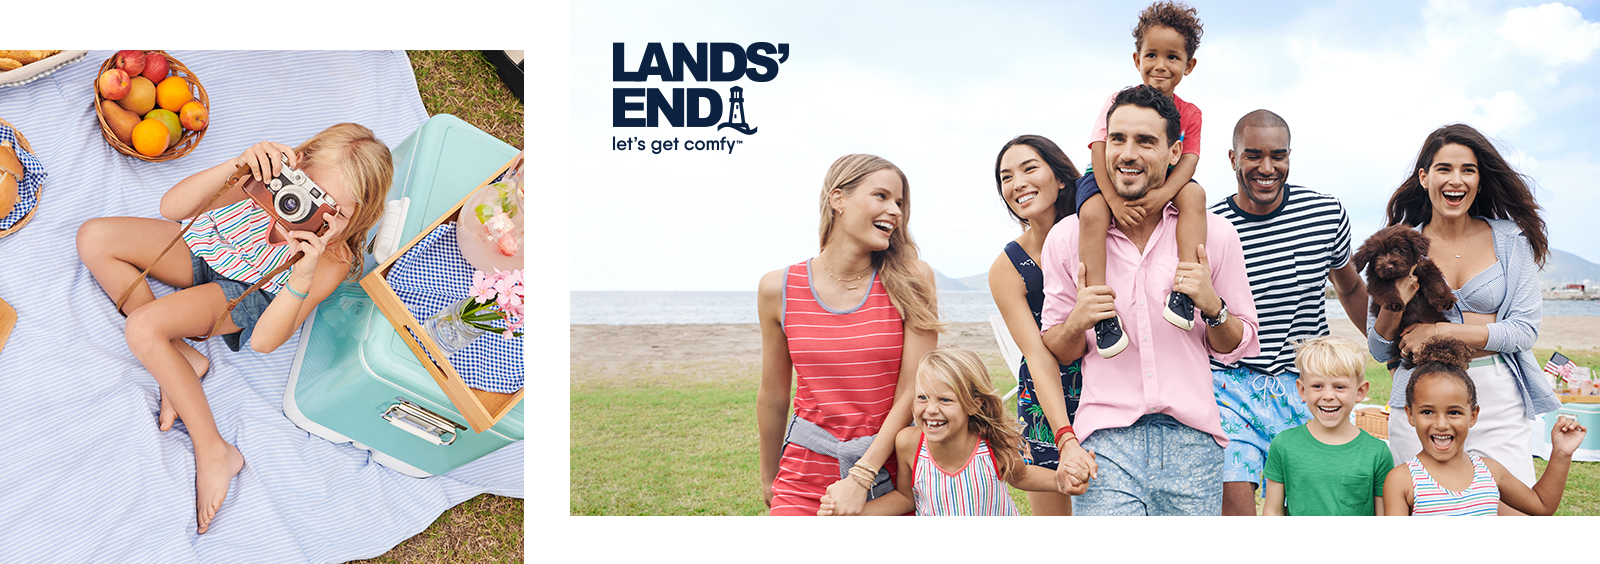 Wear to a Social Distance BBQ | Lands' End